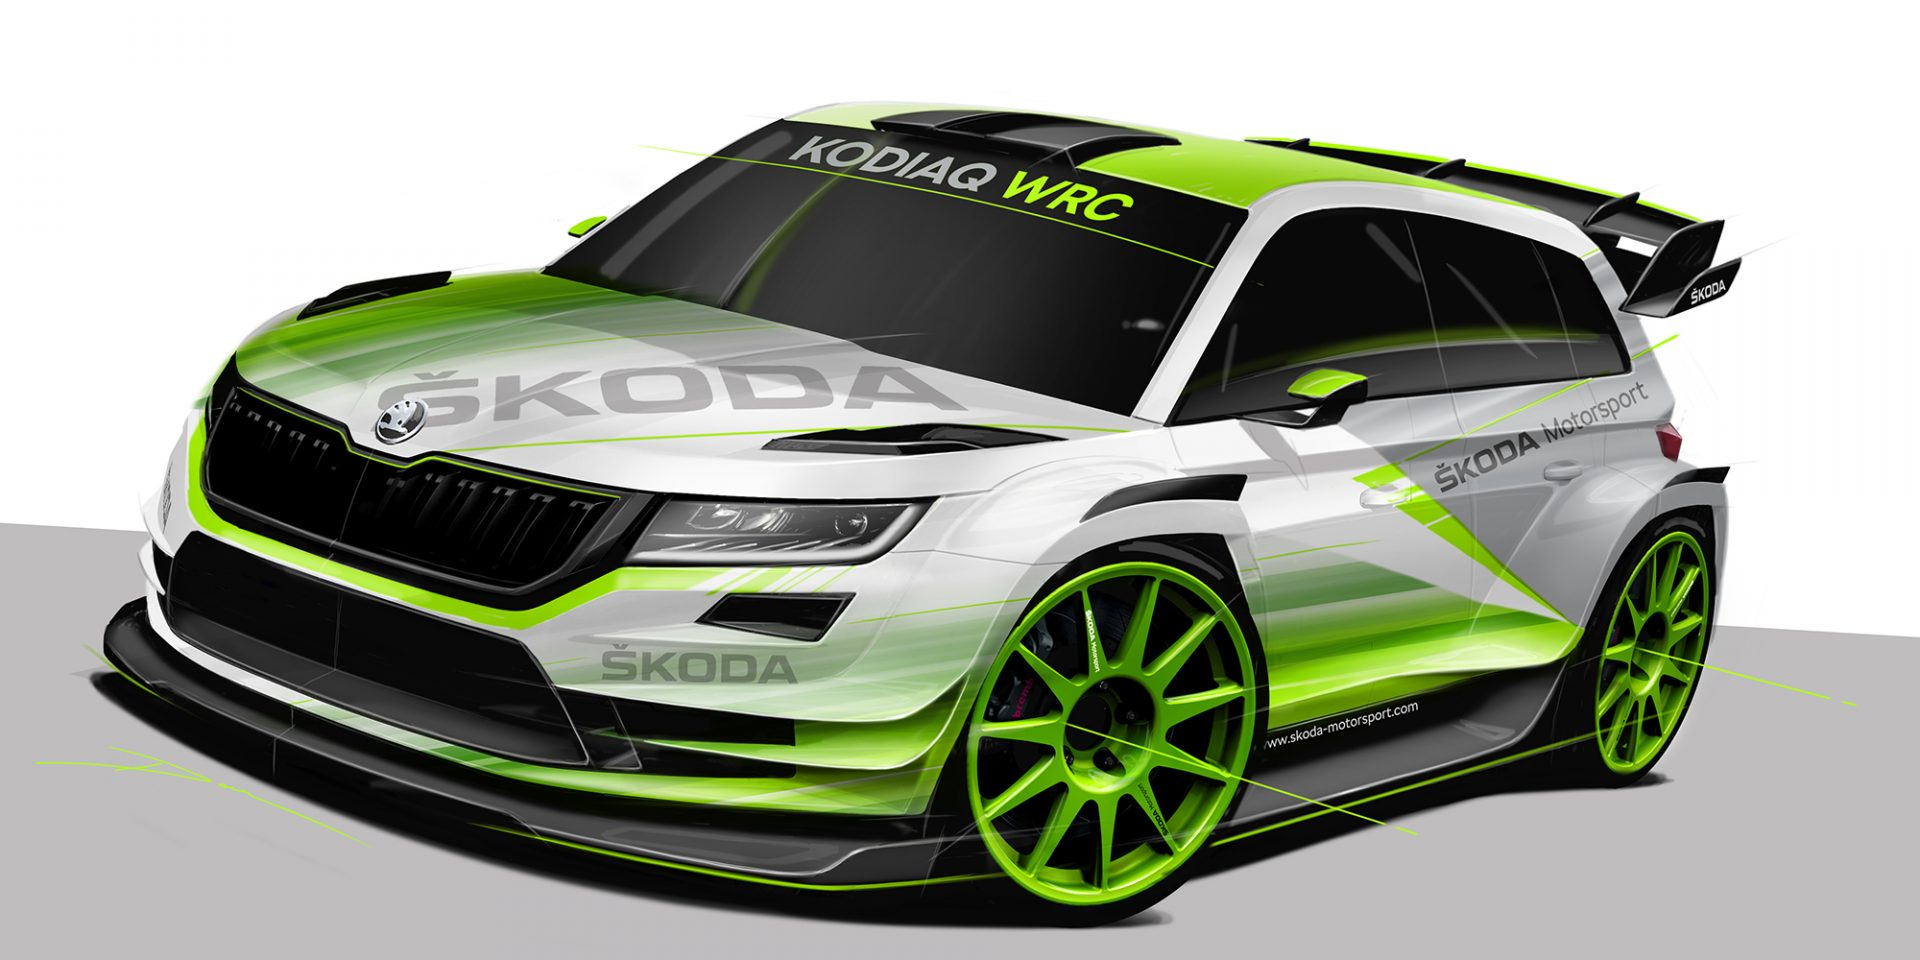 A New Predator in the World Rally Championship